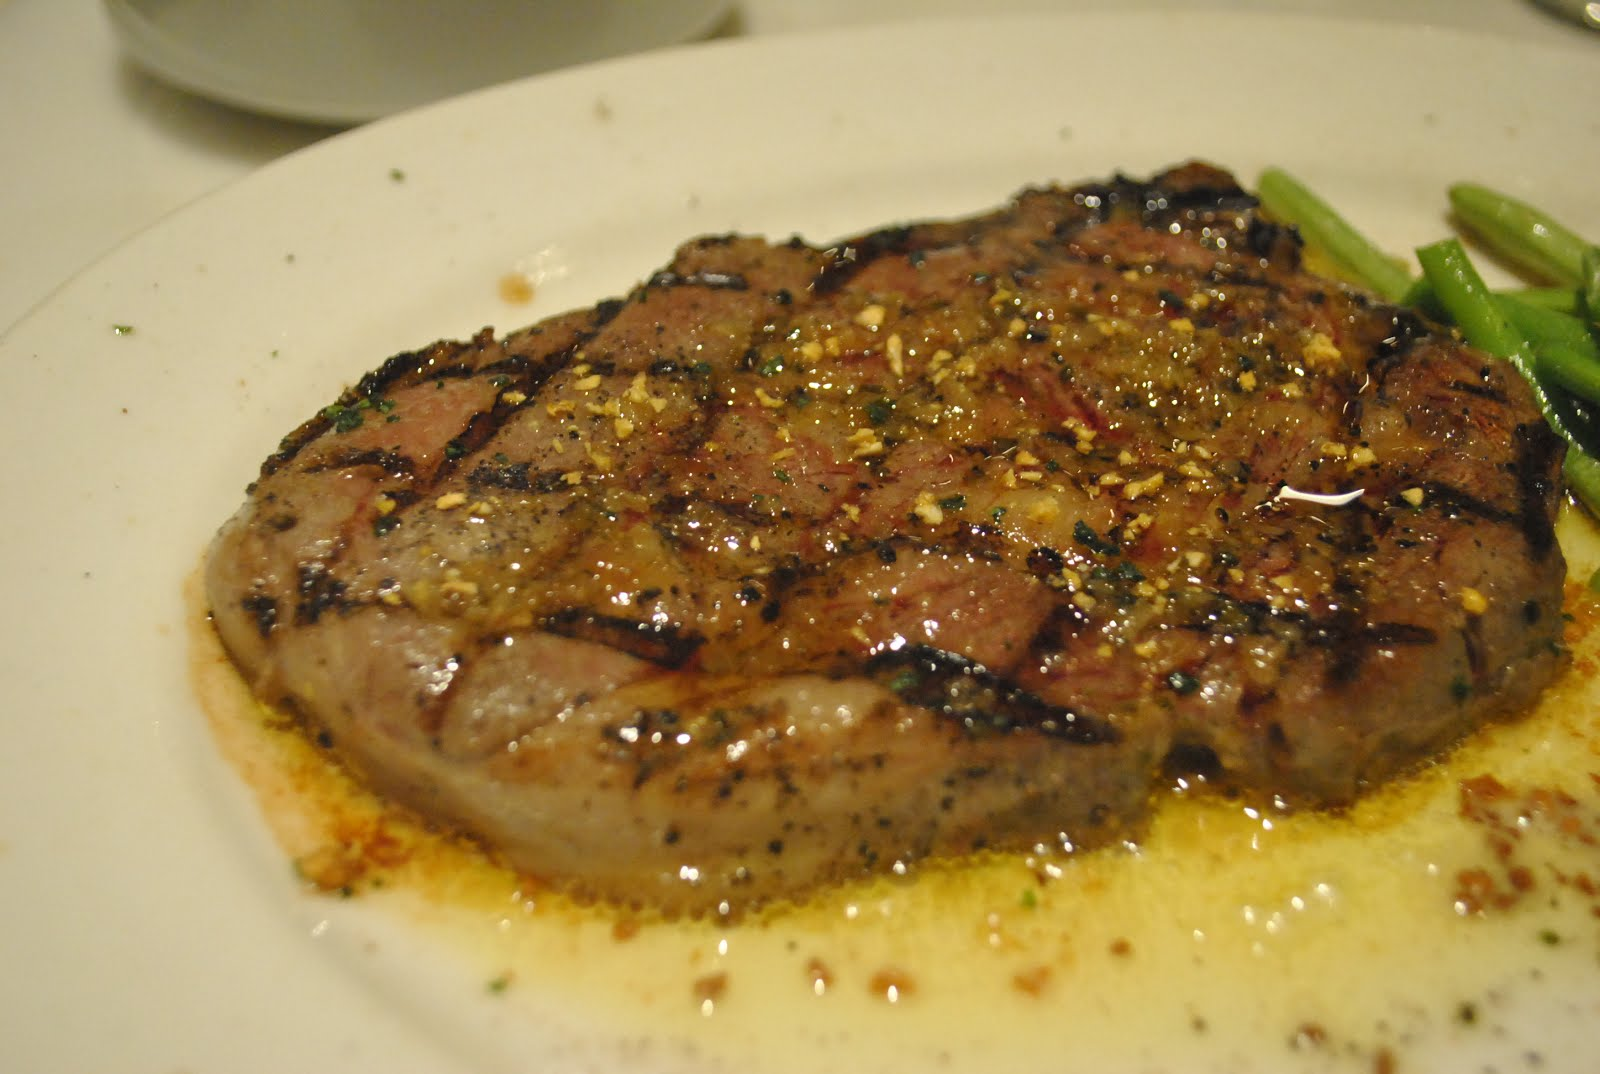 HOG ETC - Plaza Indonesia : Making out with the Steak - Entrecote Steak 3